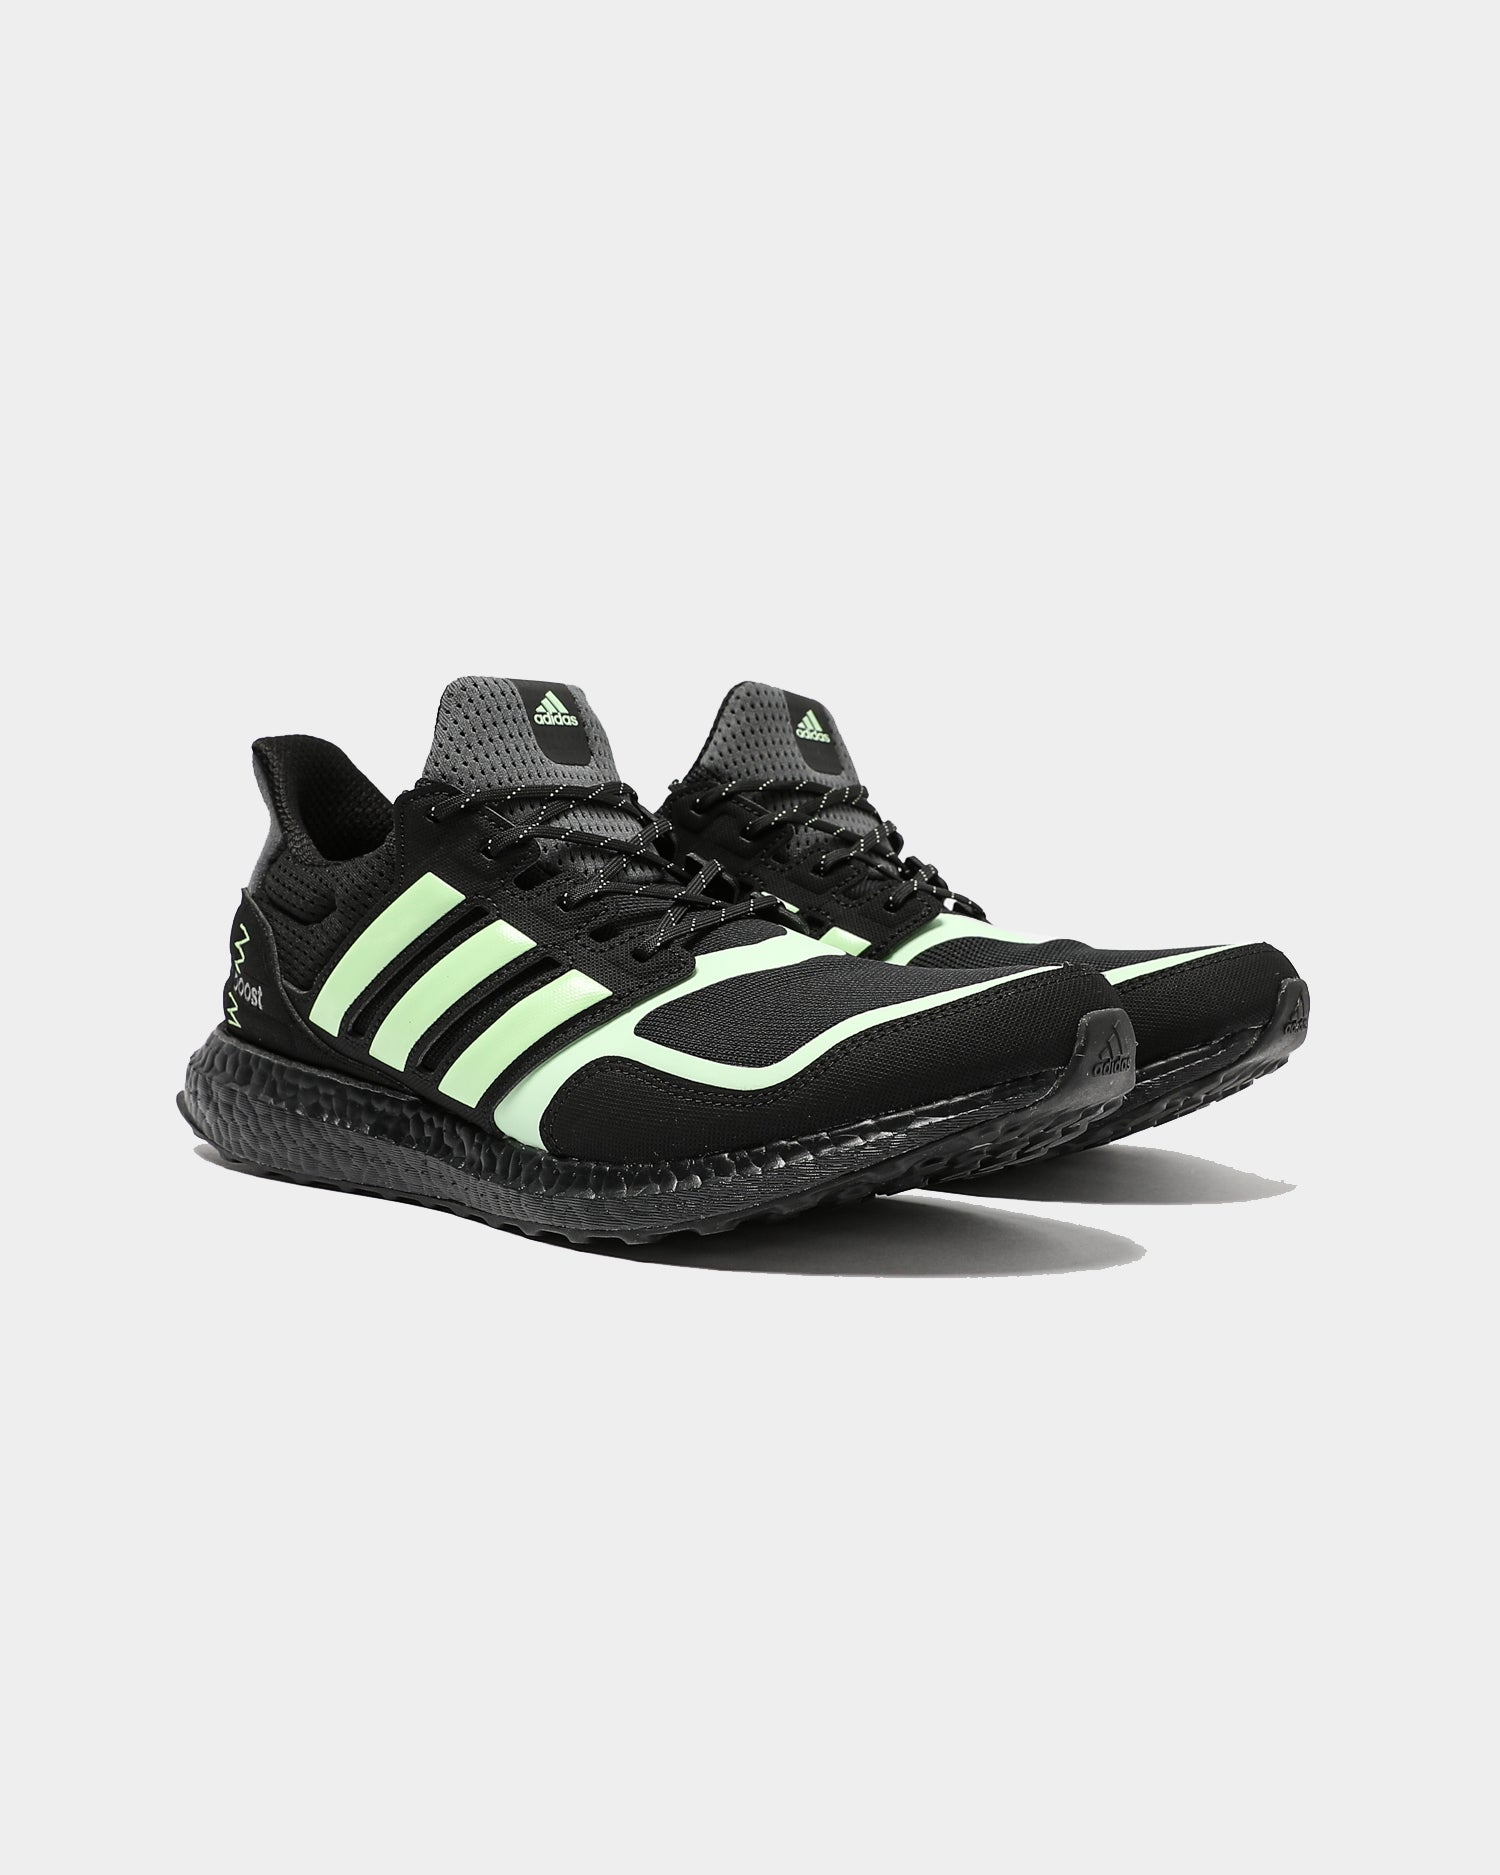 adidas ultra boost grey and black, Adidas Overwear T shirt